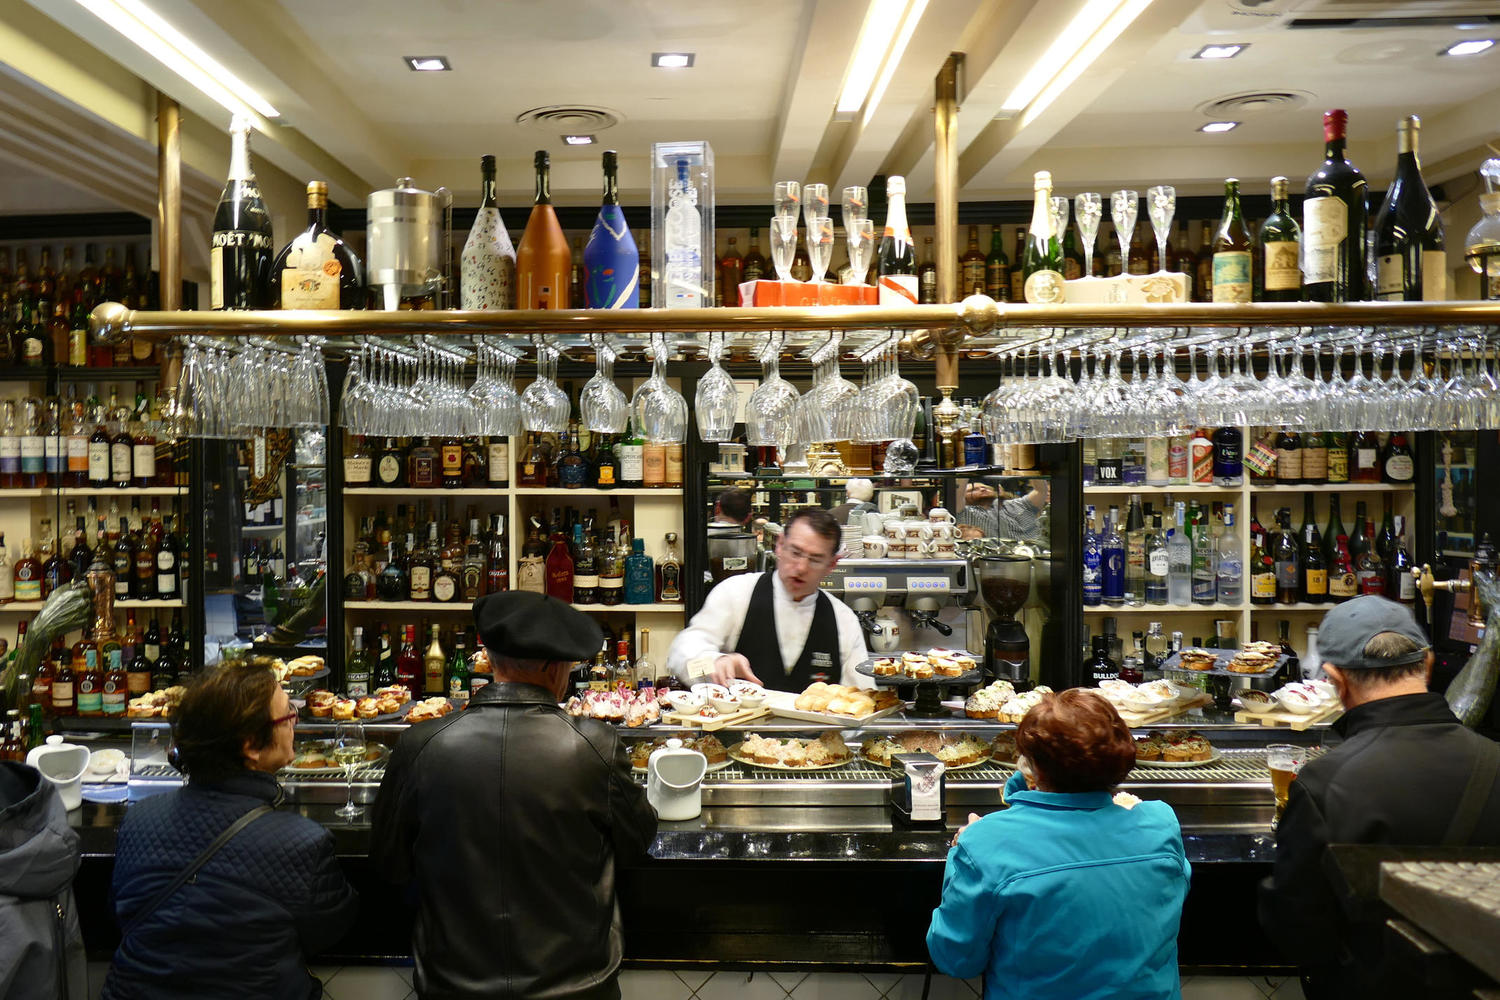 Bustling pintxo bar in the heart of Bilbao's Old Town